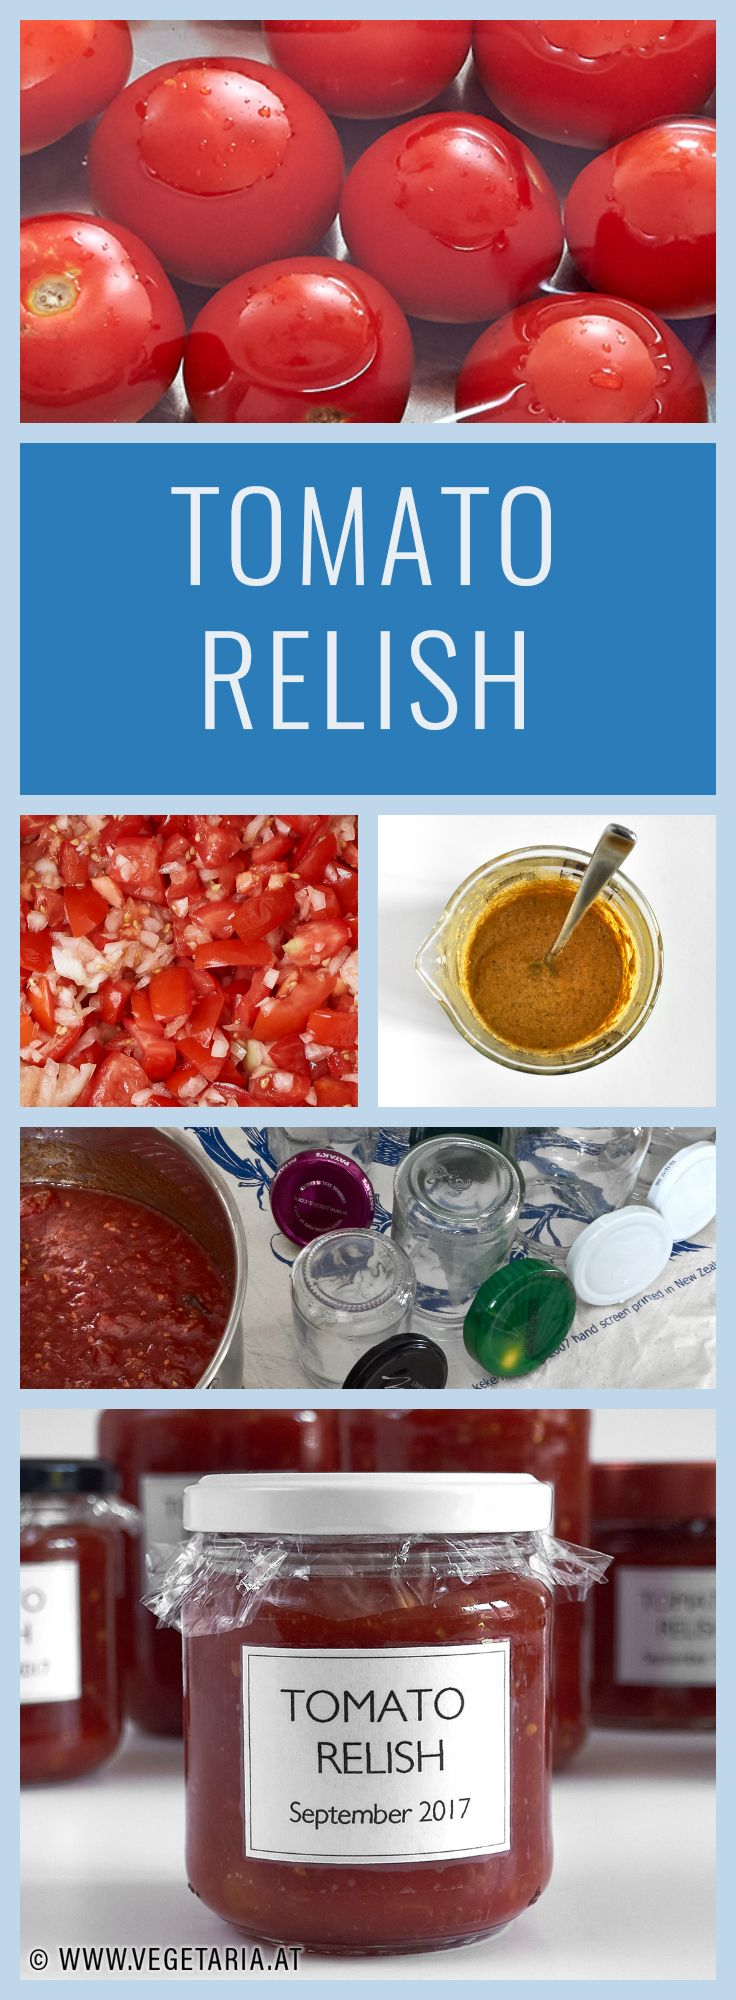 Our annual tomato relish - check out the recipe at www.vegetaria.at